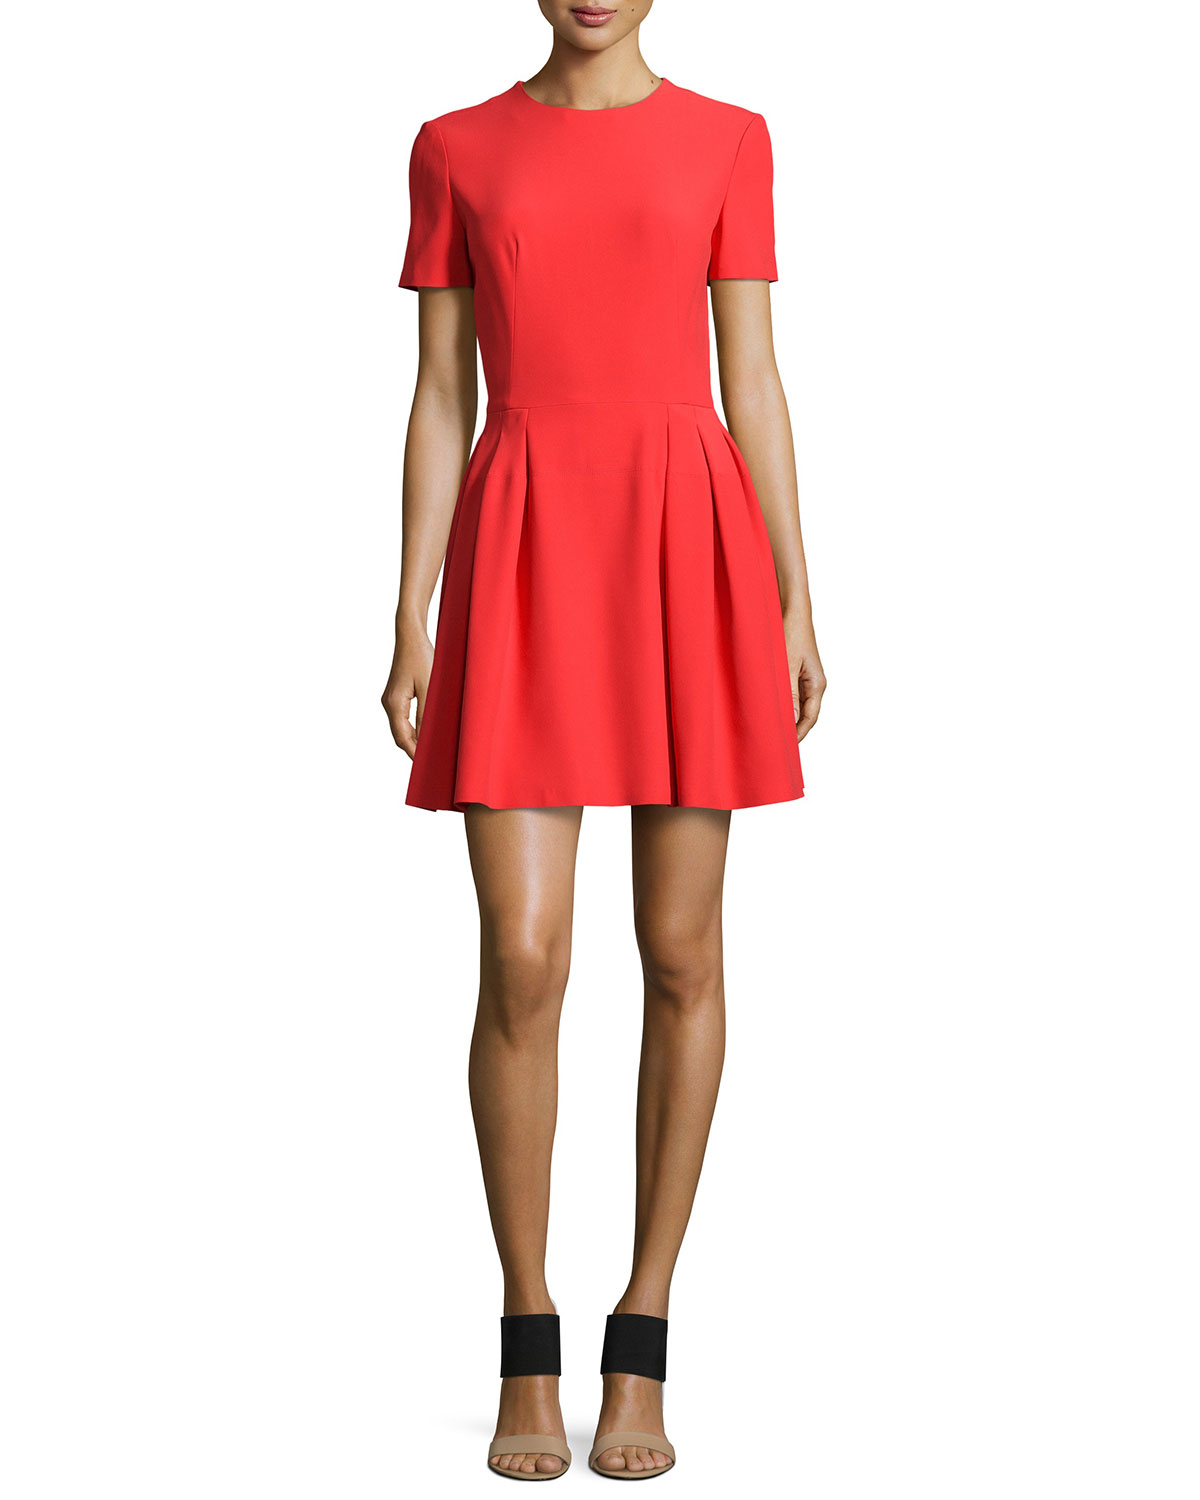 Lyst  Alexander mcqueen Matte Charmeuse Fitandflare Dress in Red